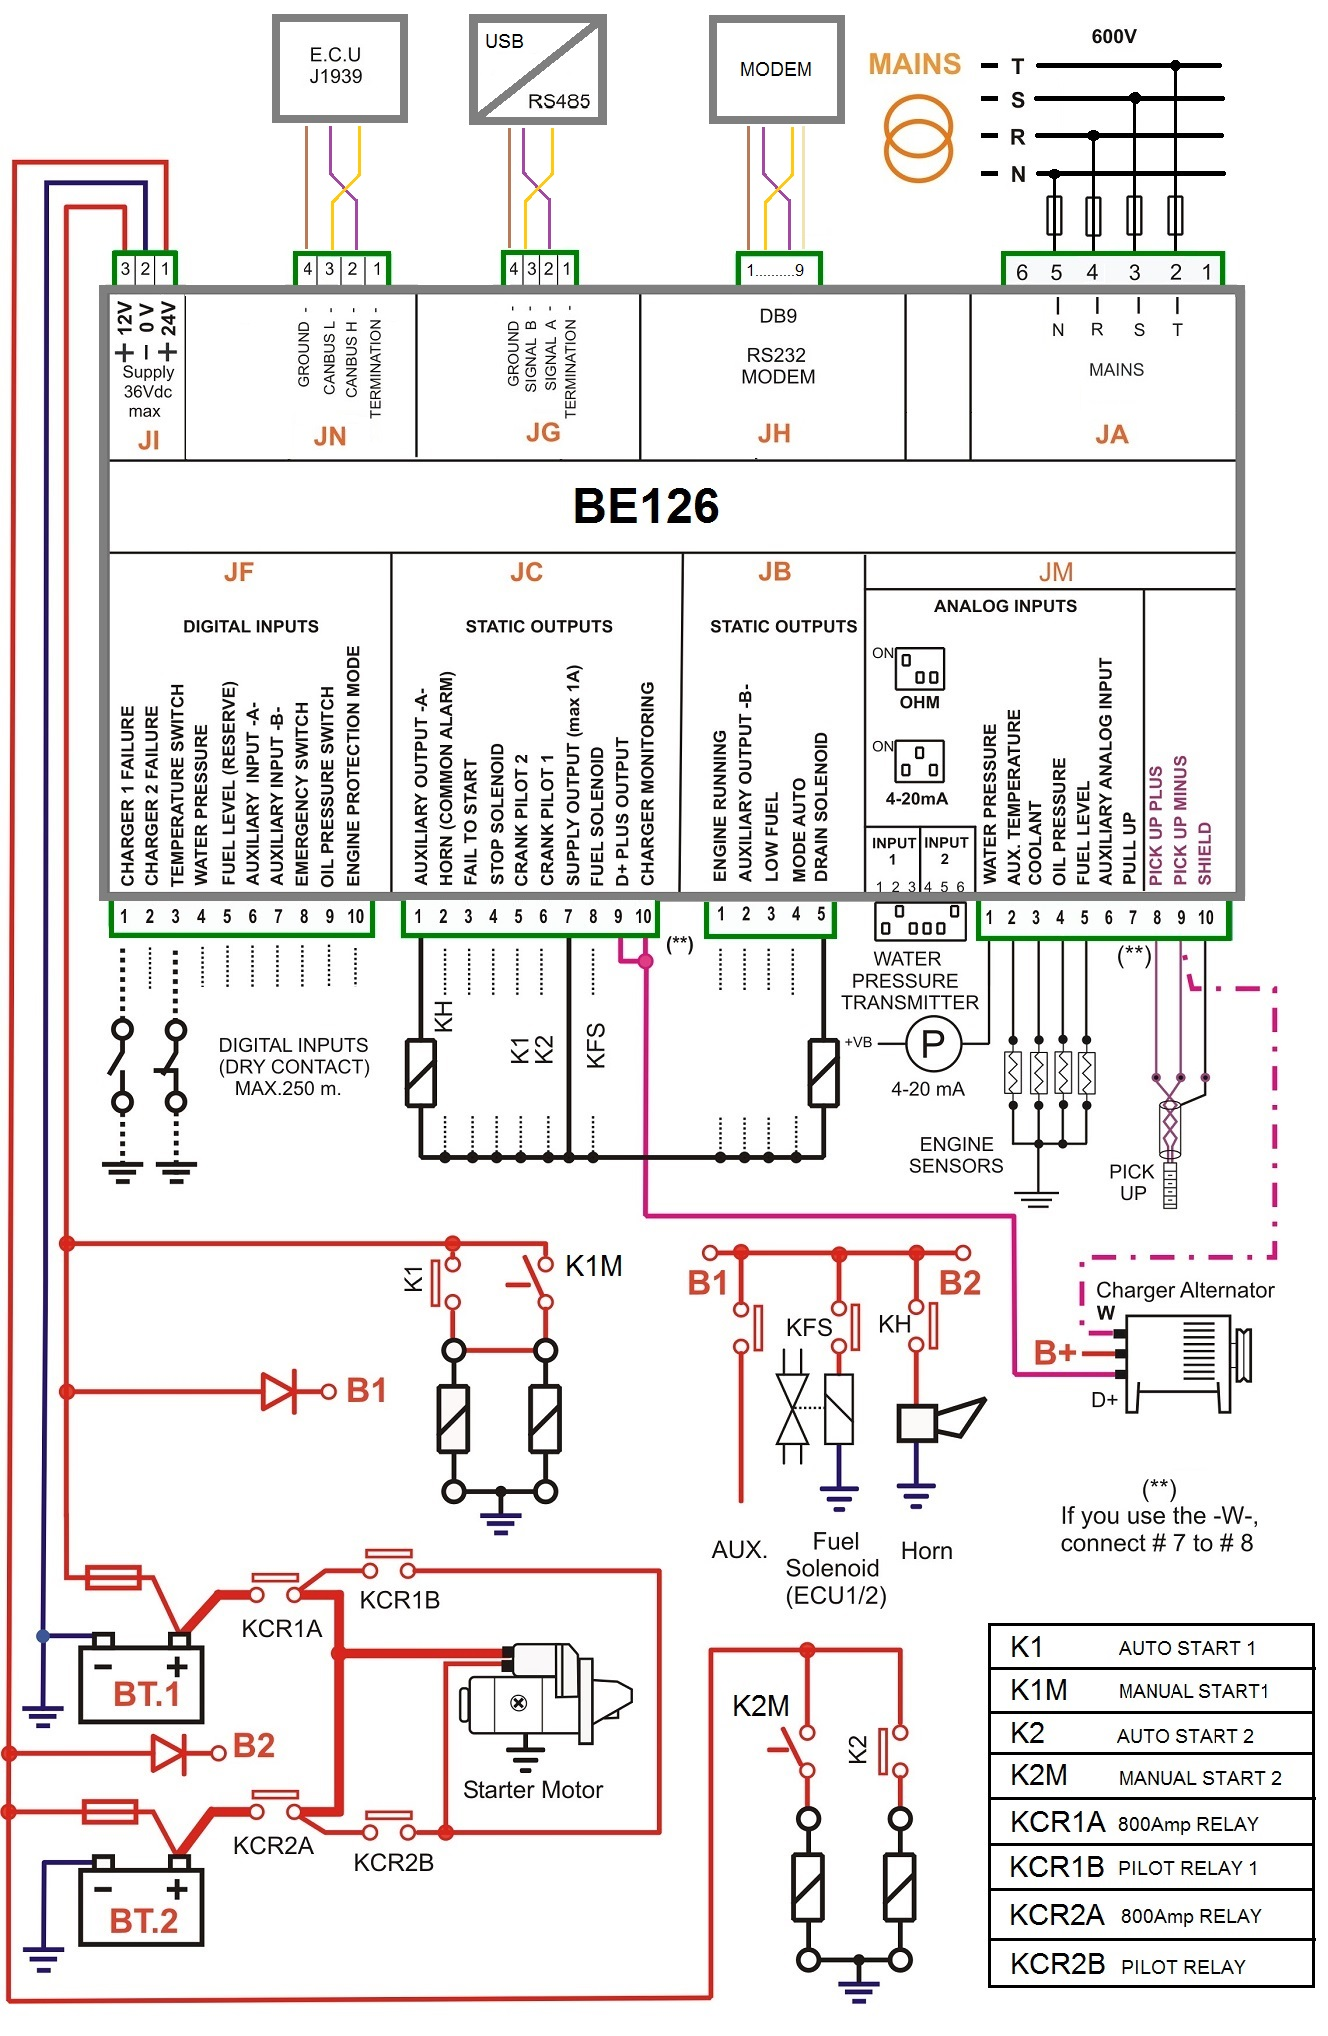 Great How To Install A Remote Starter Tiny Remote Start Wiring Round Technical Service Bulletin Lookup Solar System Electrical Diagram Old The Solar System Diagram PinkWiring An Electrical Box Diagrams#800512: Alarm Wiring Diagrams \u2013 Alarm Wire Diagram Alarm ..